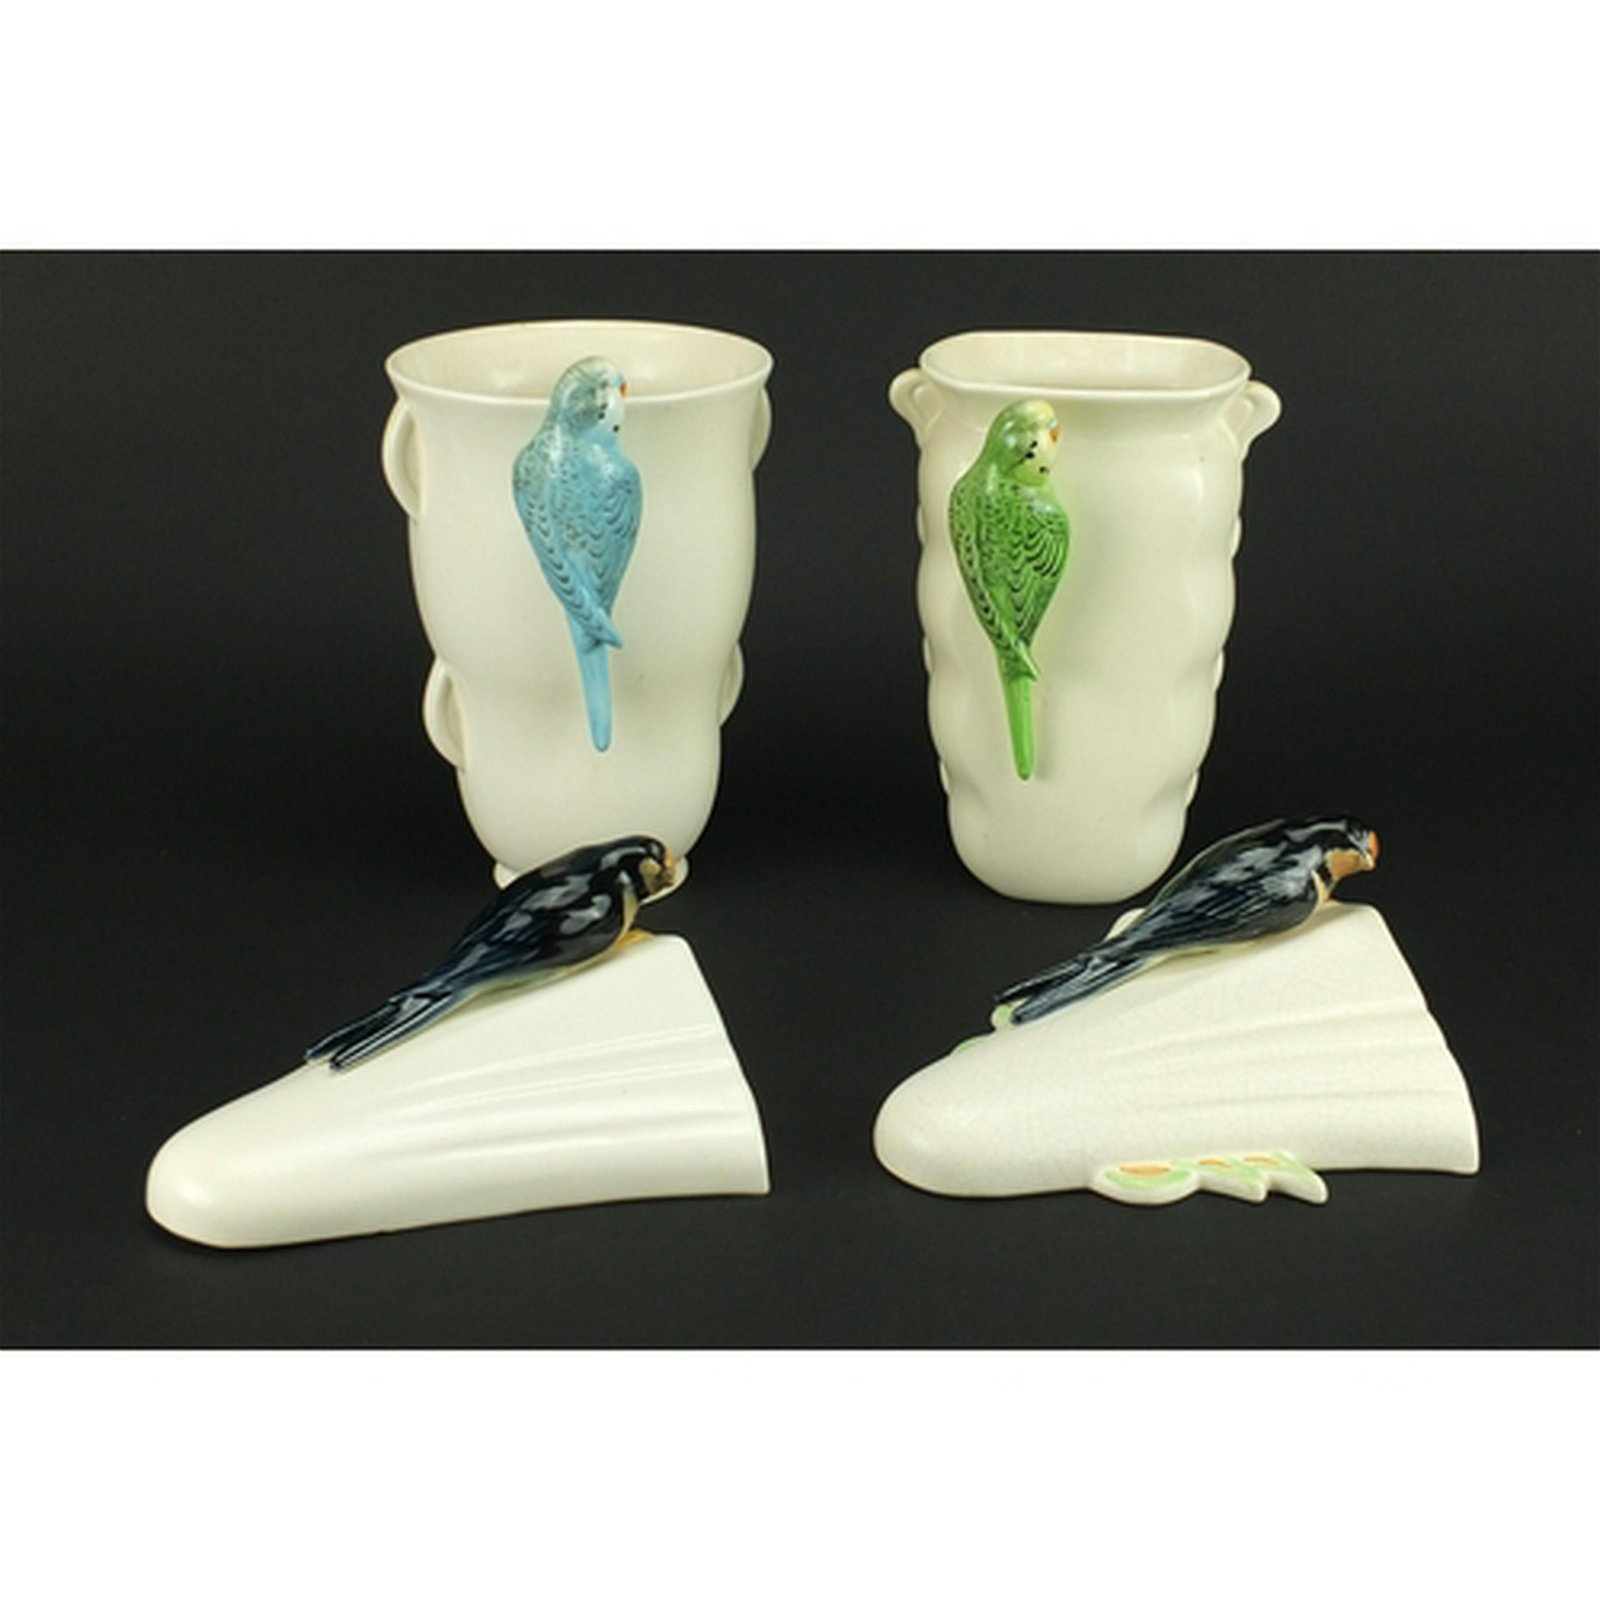 Two Art Deco Sylvac/Falcon Ware vases and a pair of